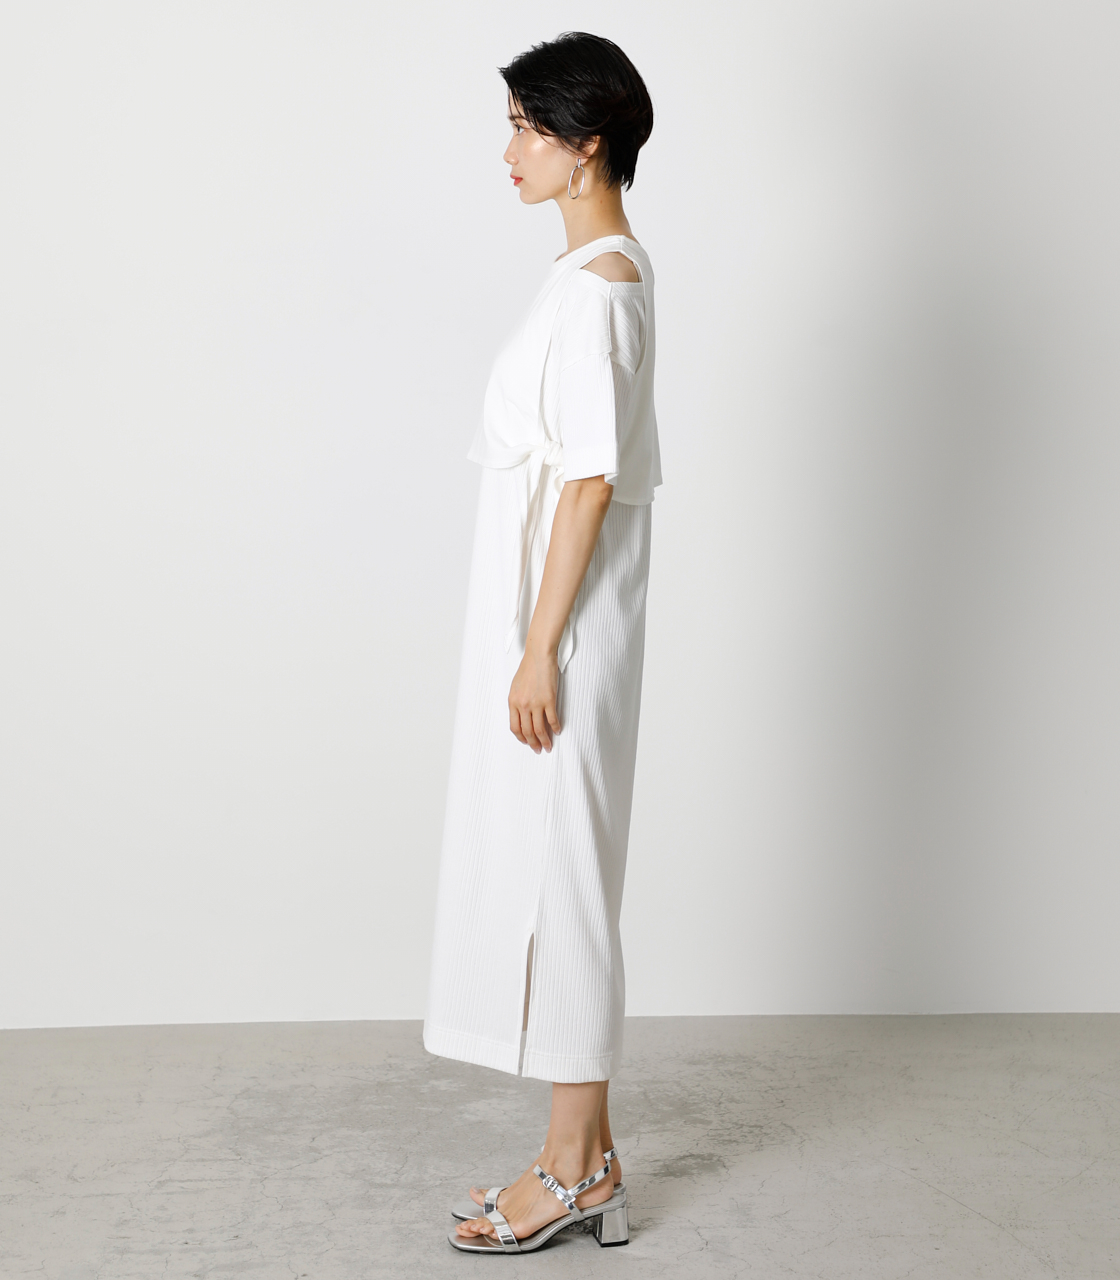 FRONT LINK ONEPIECE/フロントリンクワンピース 詳細画像 O/WHT 5